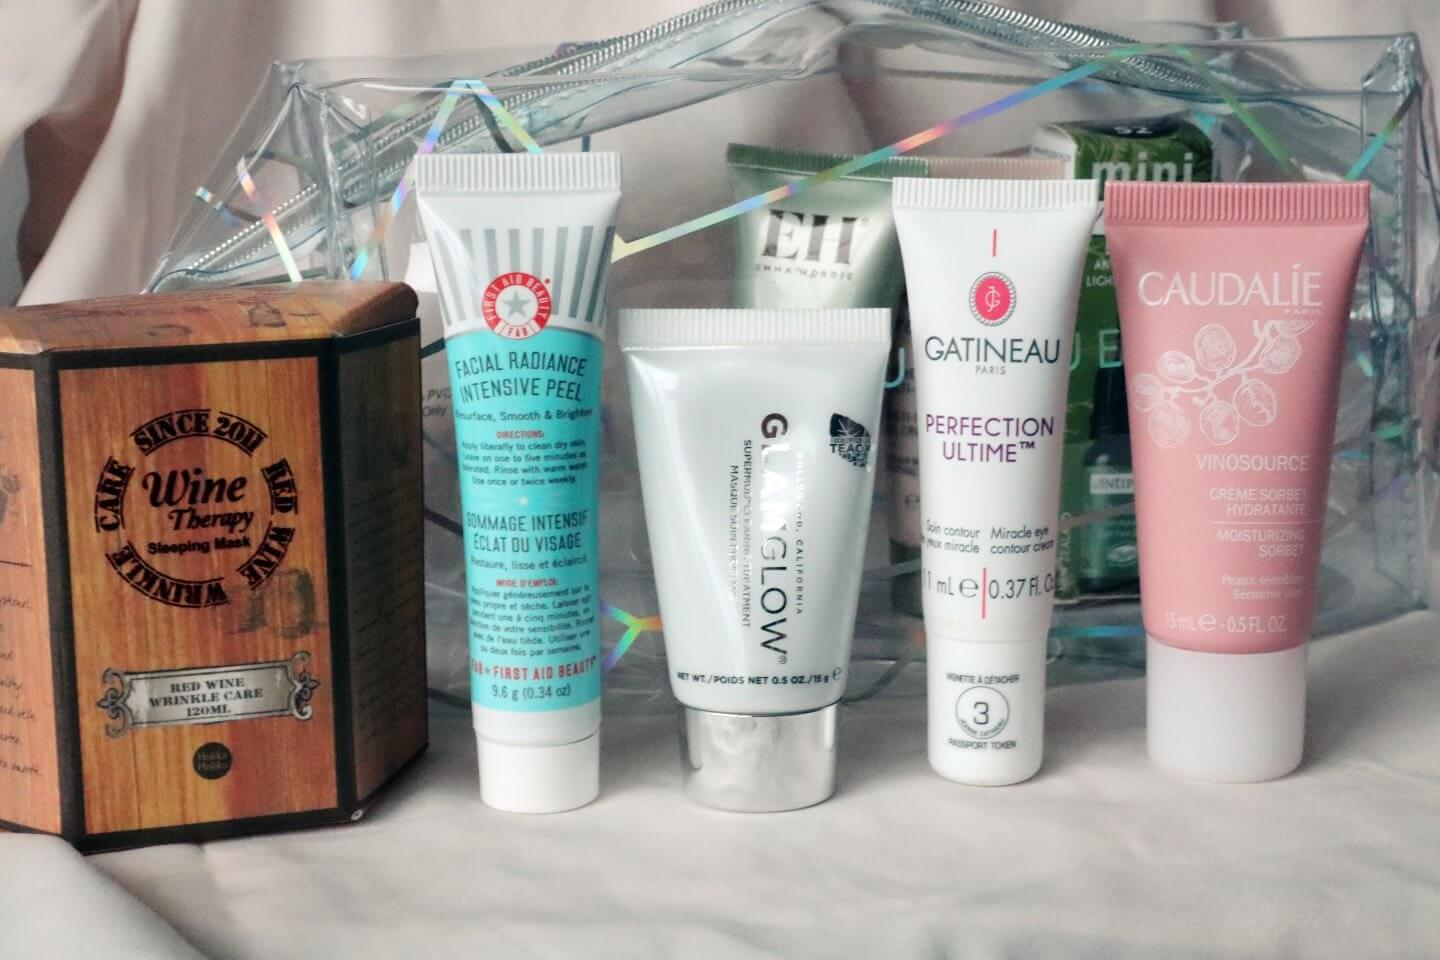 Feelunique Beauty Bag giftset including 2 full size products and 5 travel size samples including products from First Aid Beauty, Glam Glow, Caudalie, Emma Hardie, Antipodes.